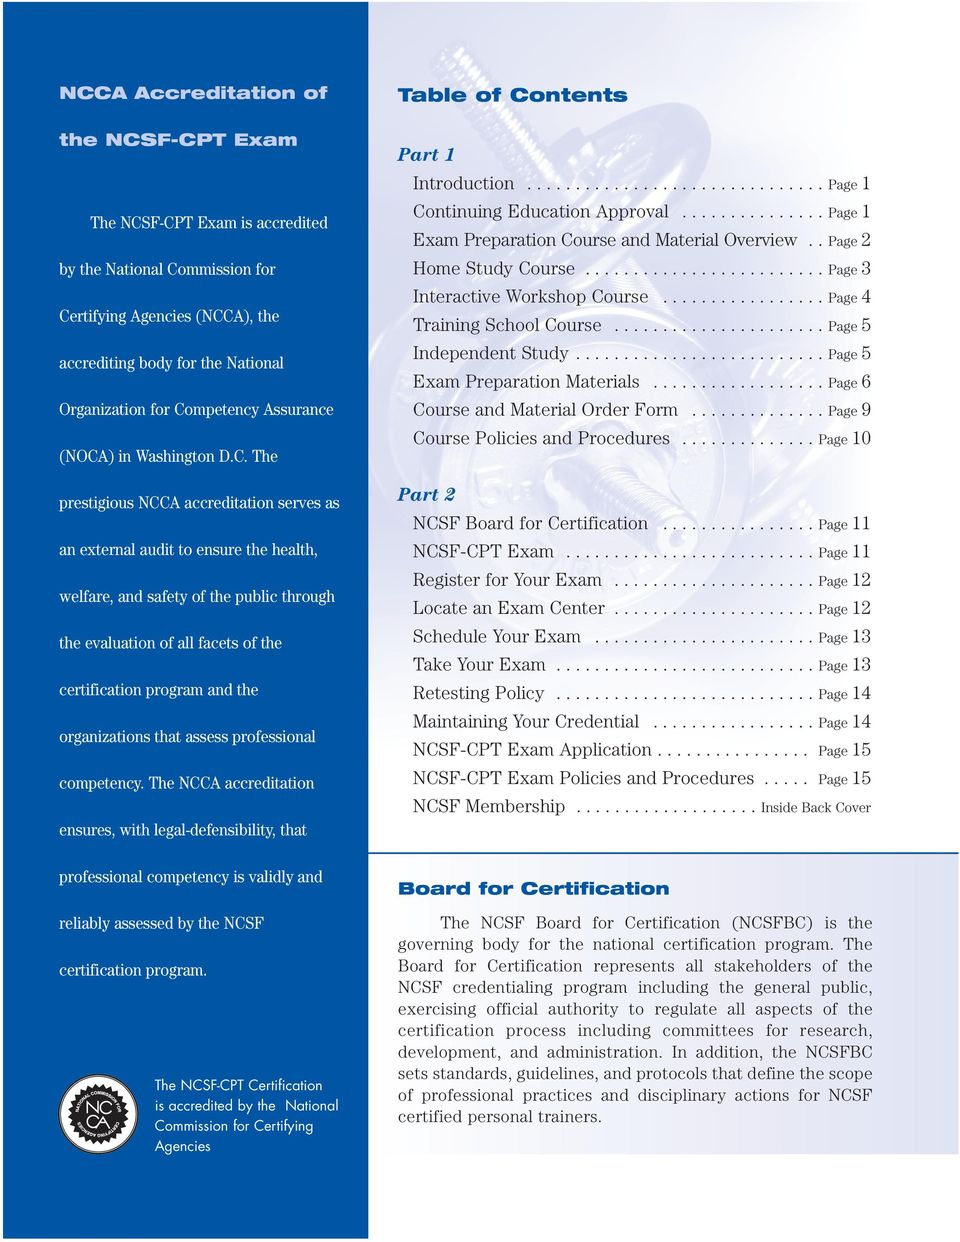 Ncca Accredited The Ncsf Cpt Certification Is Accredited By The